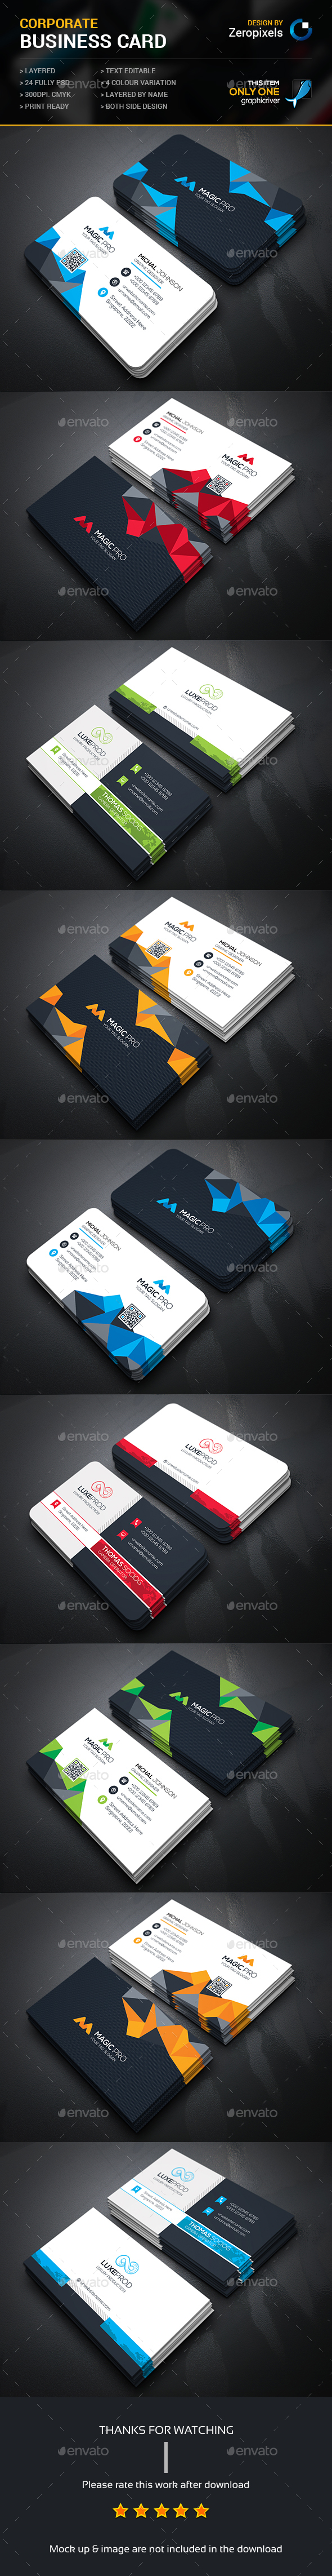 Business card bundle photoshop psd green pack available here business card bundle photoshop psd green pack available here https reheart Images